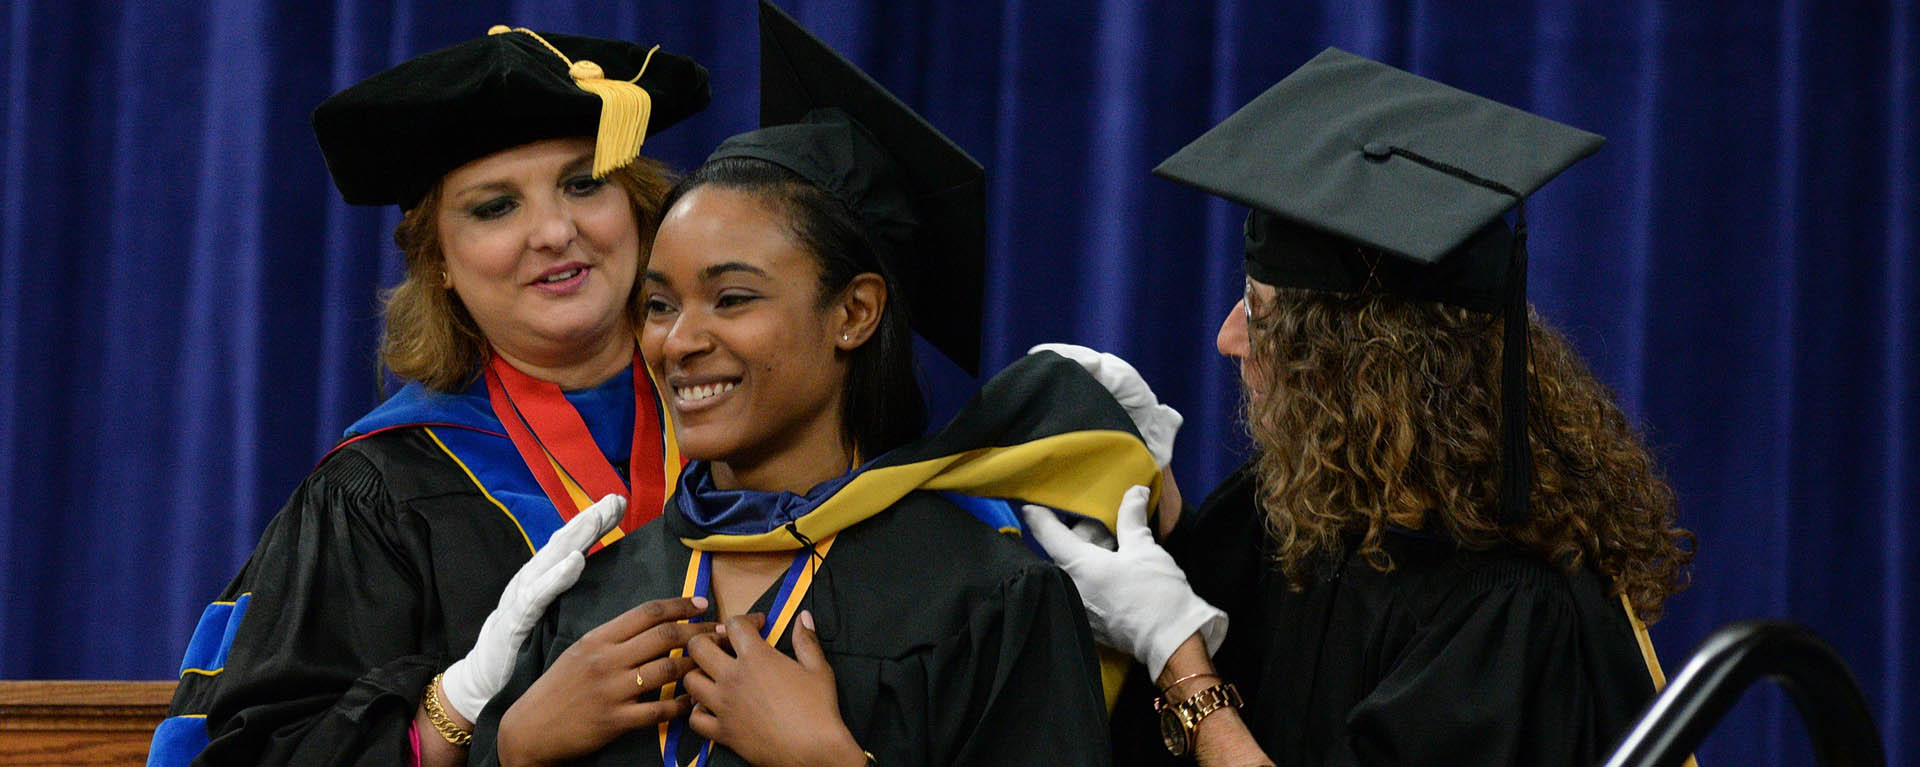 Graduating female student smiling